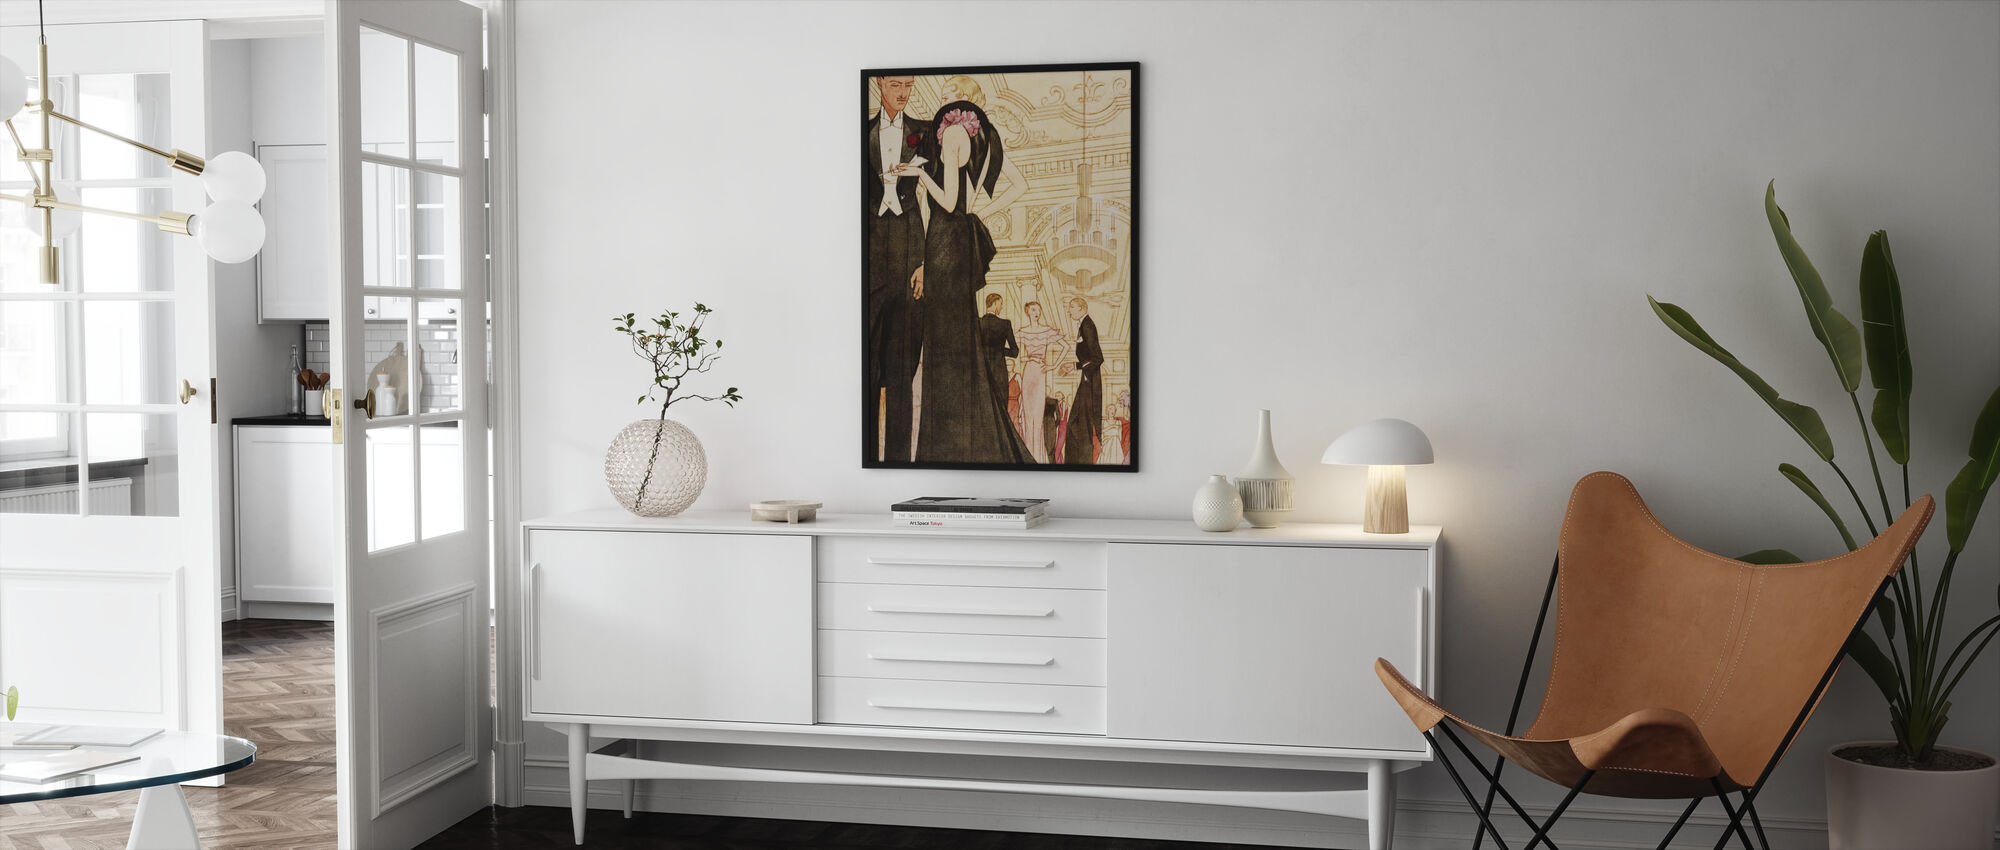 Evening Scene, National Magazines - Framed print - Living Room